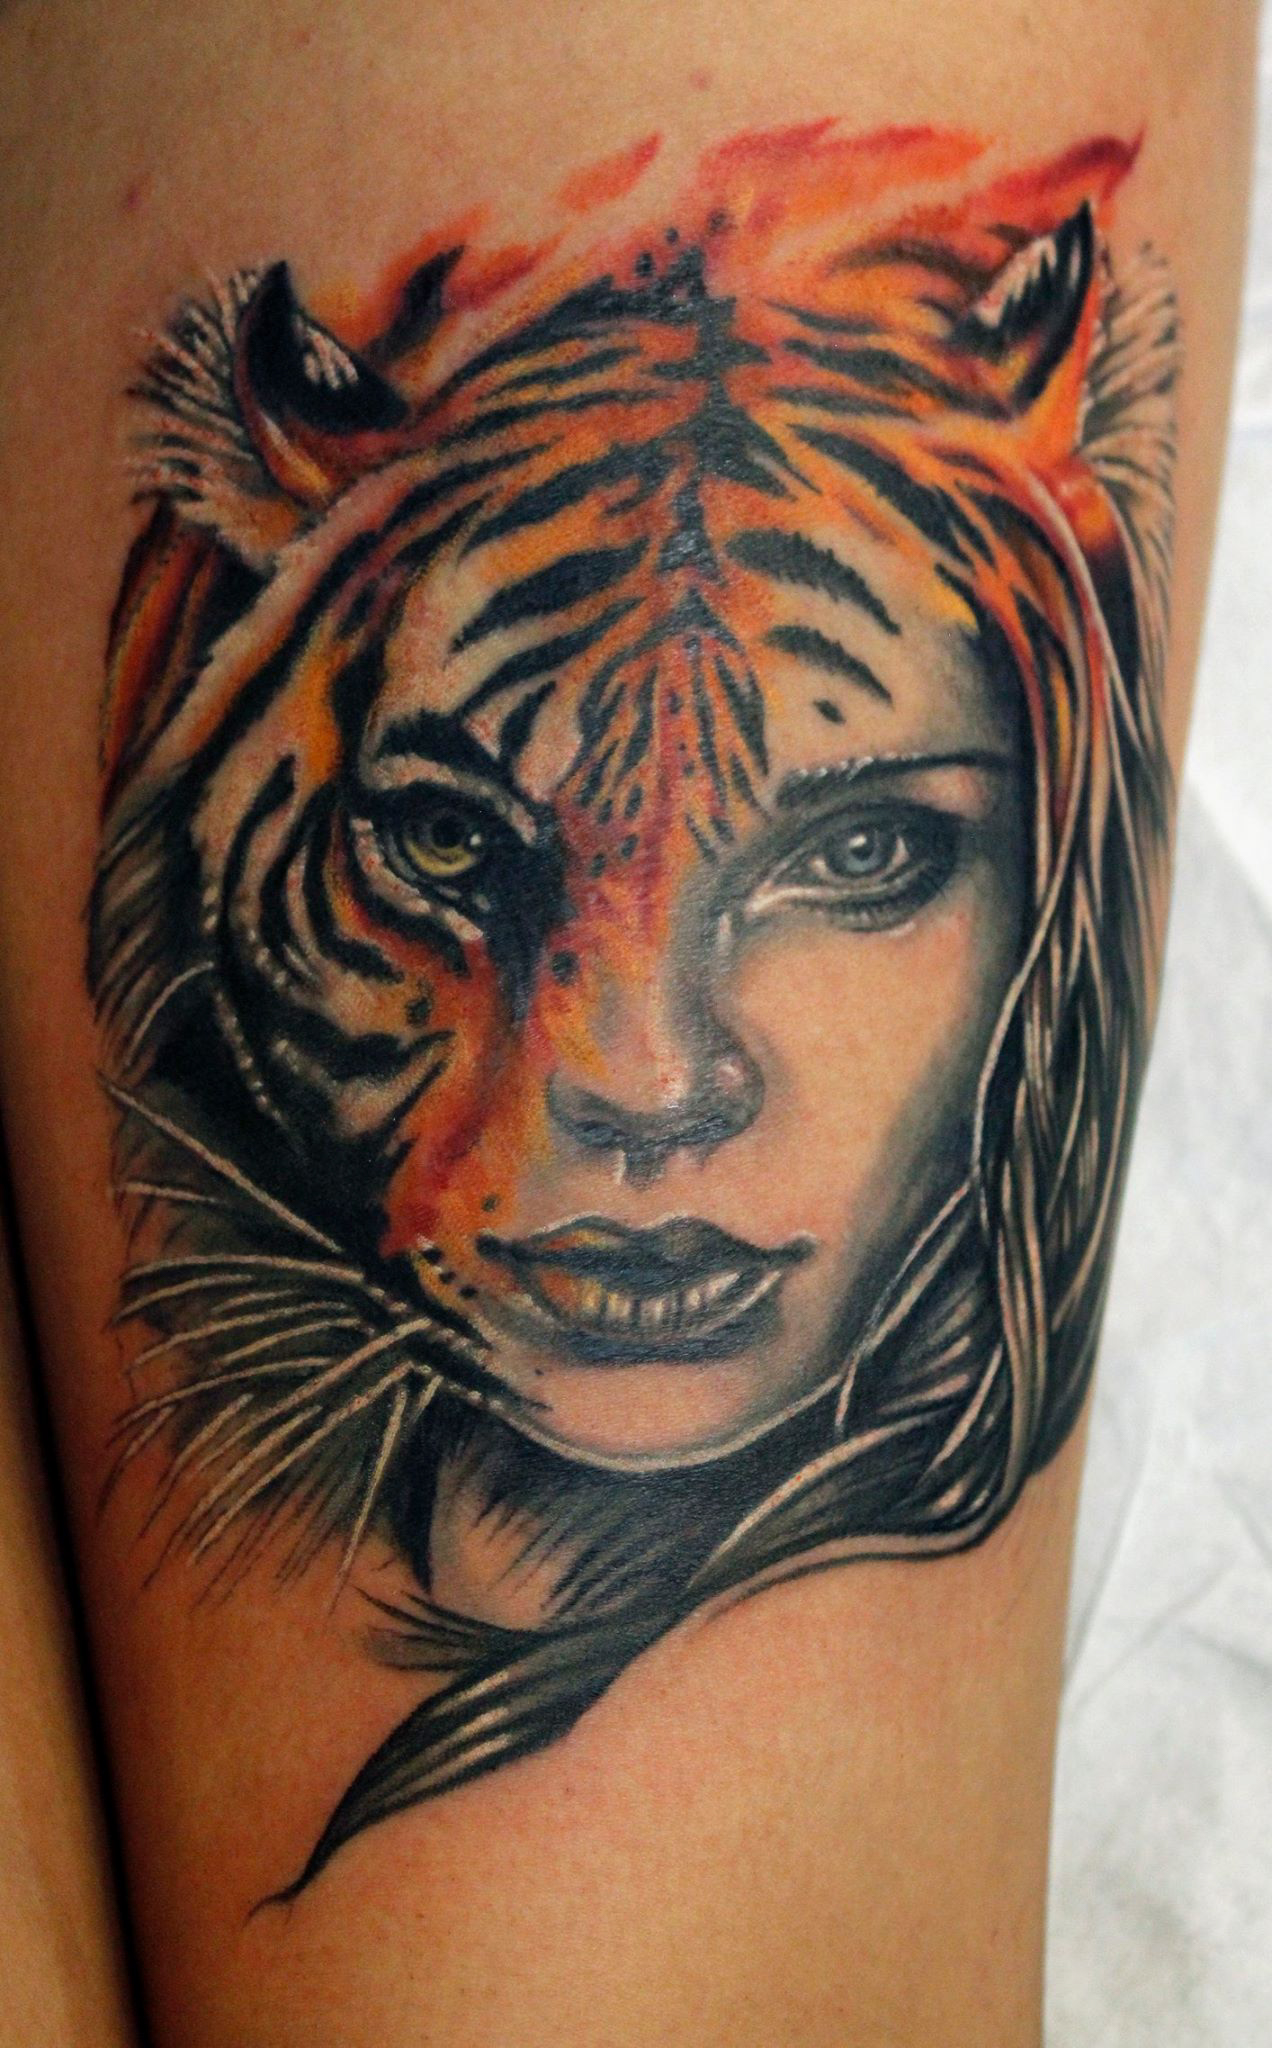 Sean ambrose certified artist for Tiger tattoo for girl